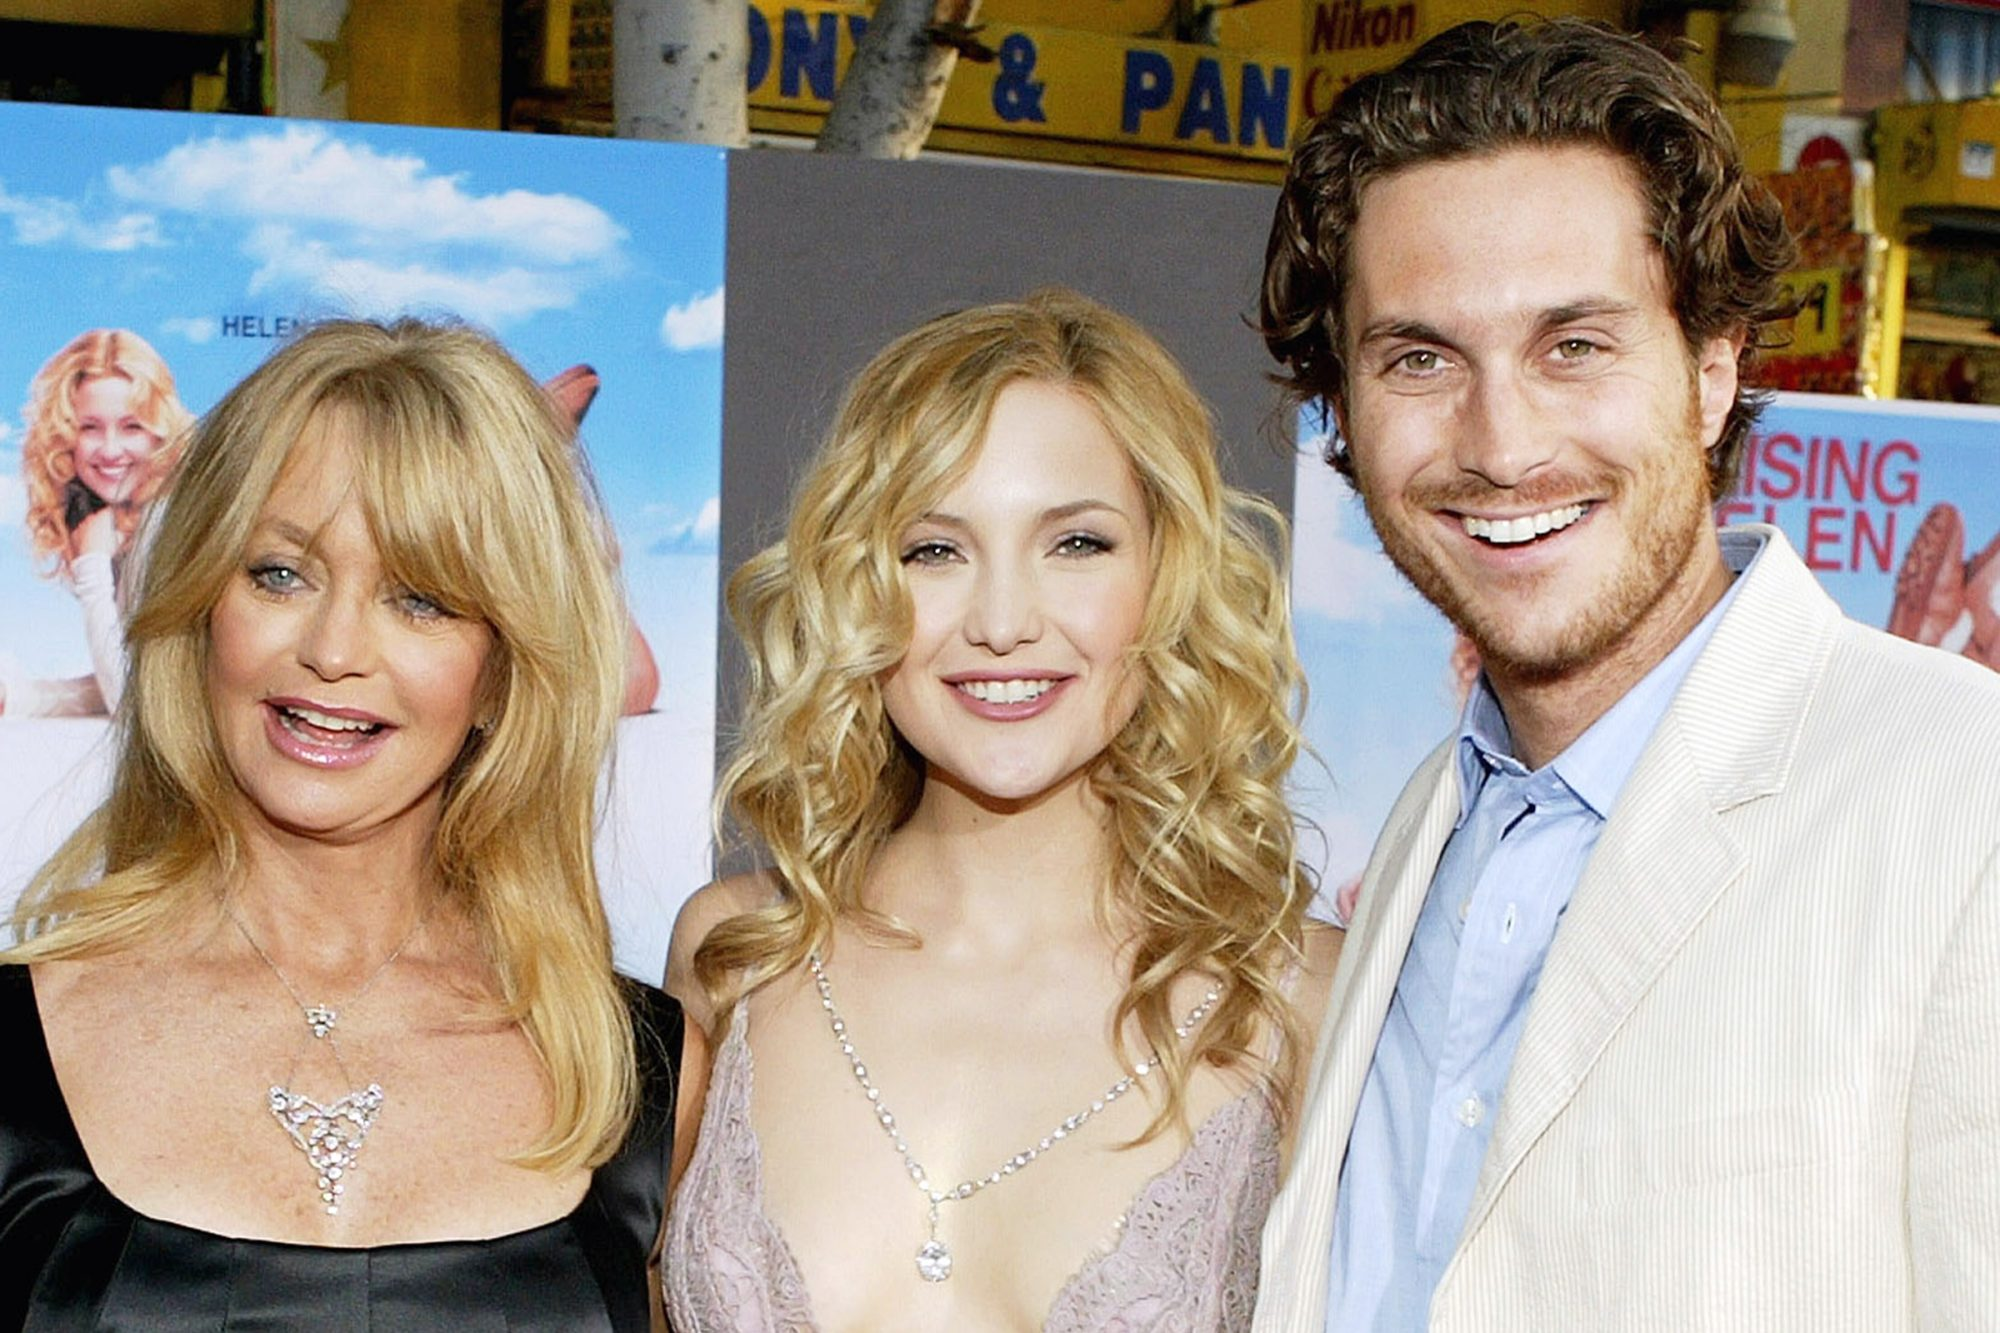 Goldie Hawn, Kate Hudson, and Oliver Hudson